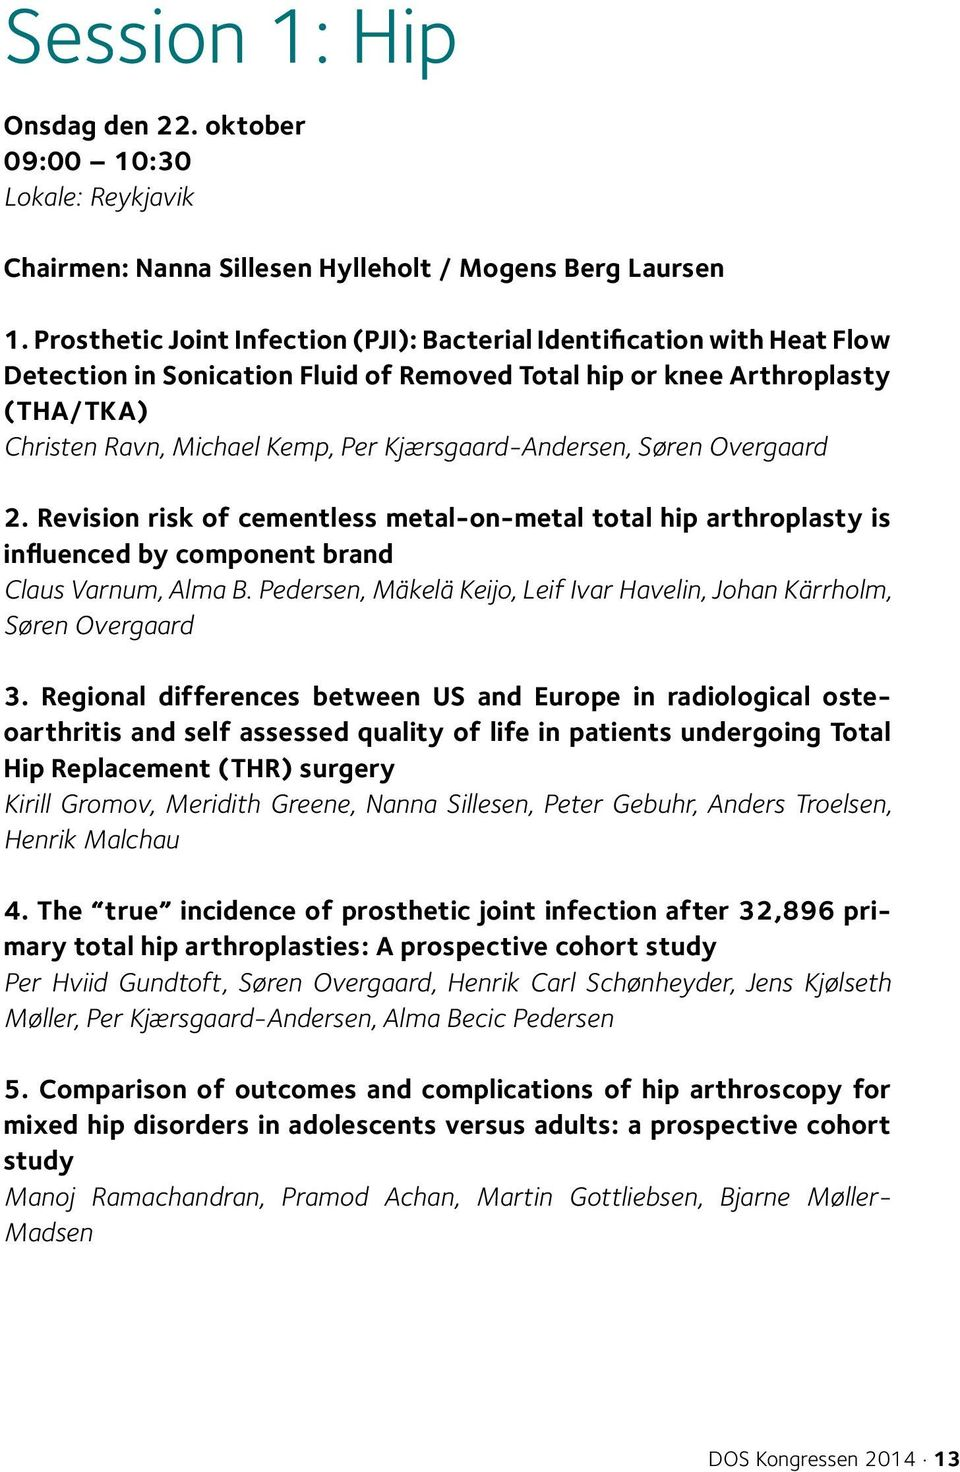 Chairmen: Prosthetic Kristoffer Joint Infection Barfod/Martin (PJI): Bacterial Lind Identification with Heat Flow Detection in Sonication Fluid of Removed Total hip or knee Arthroplasty (THA/TKA)